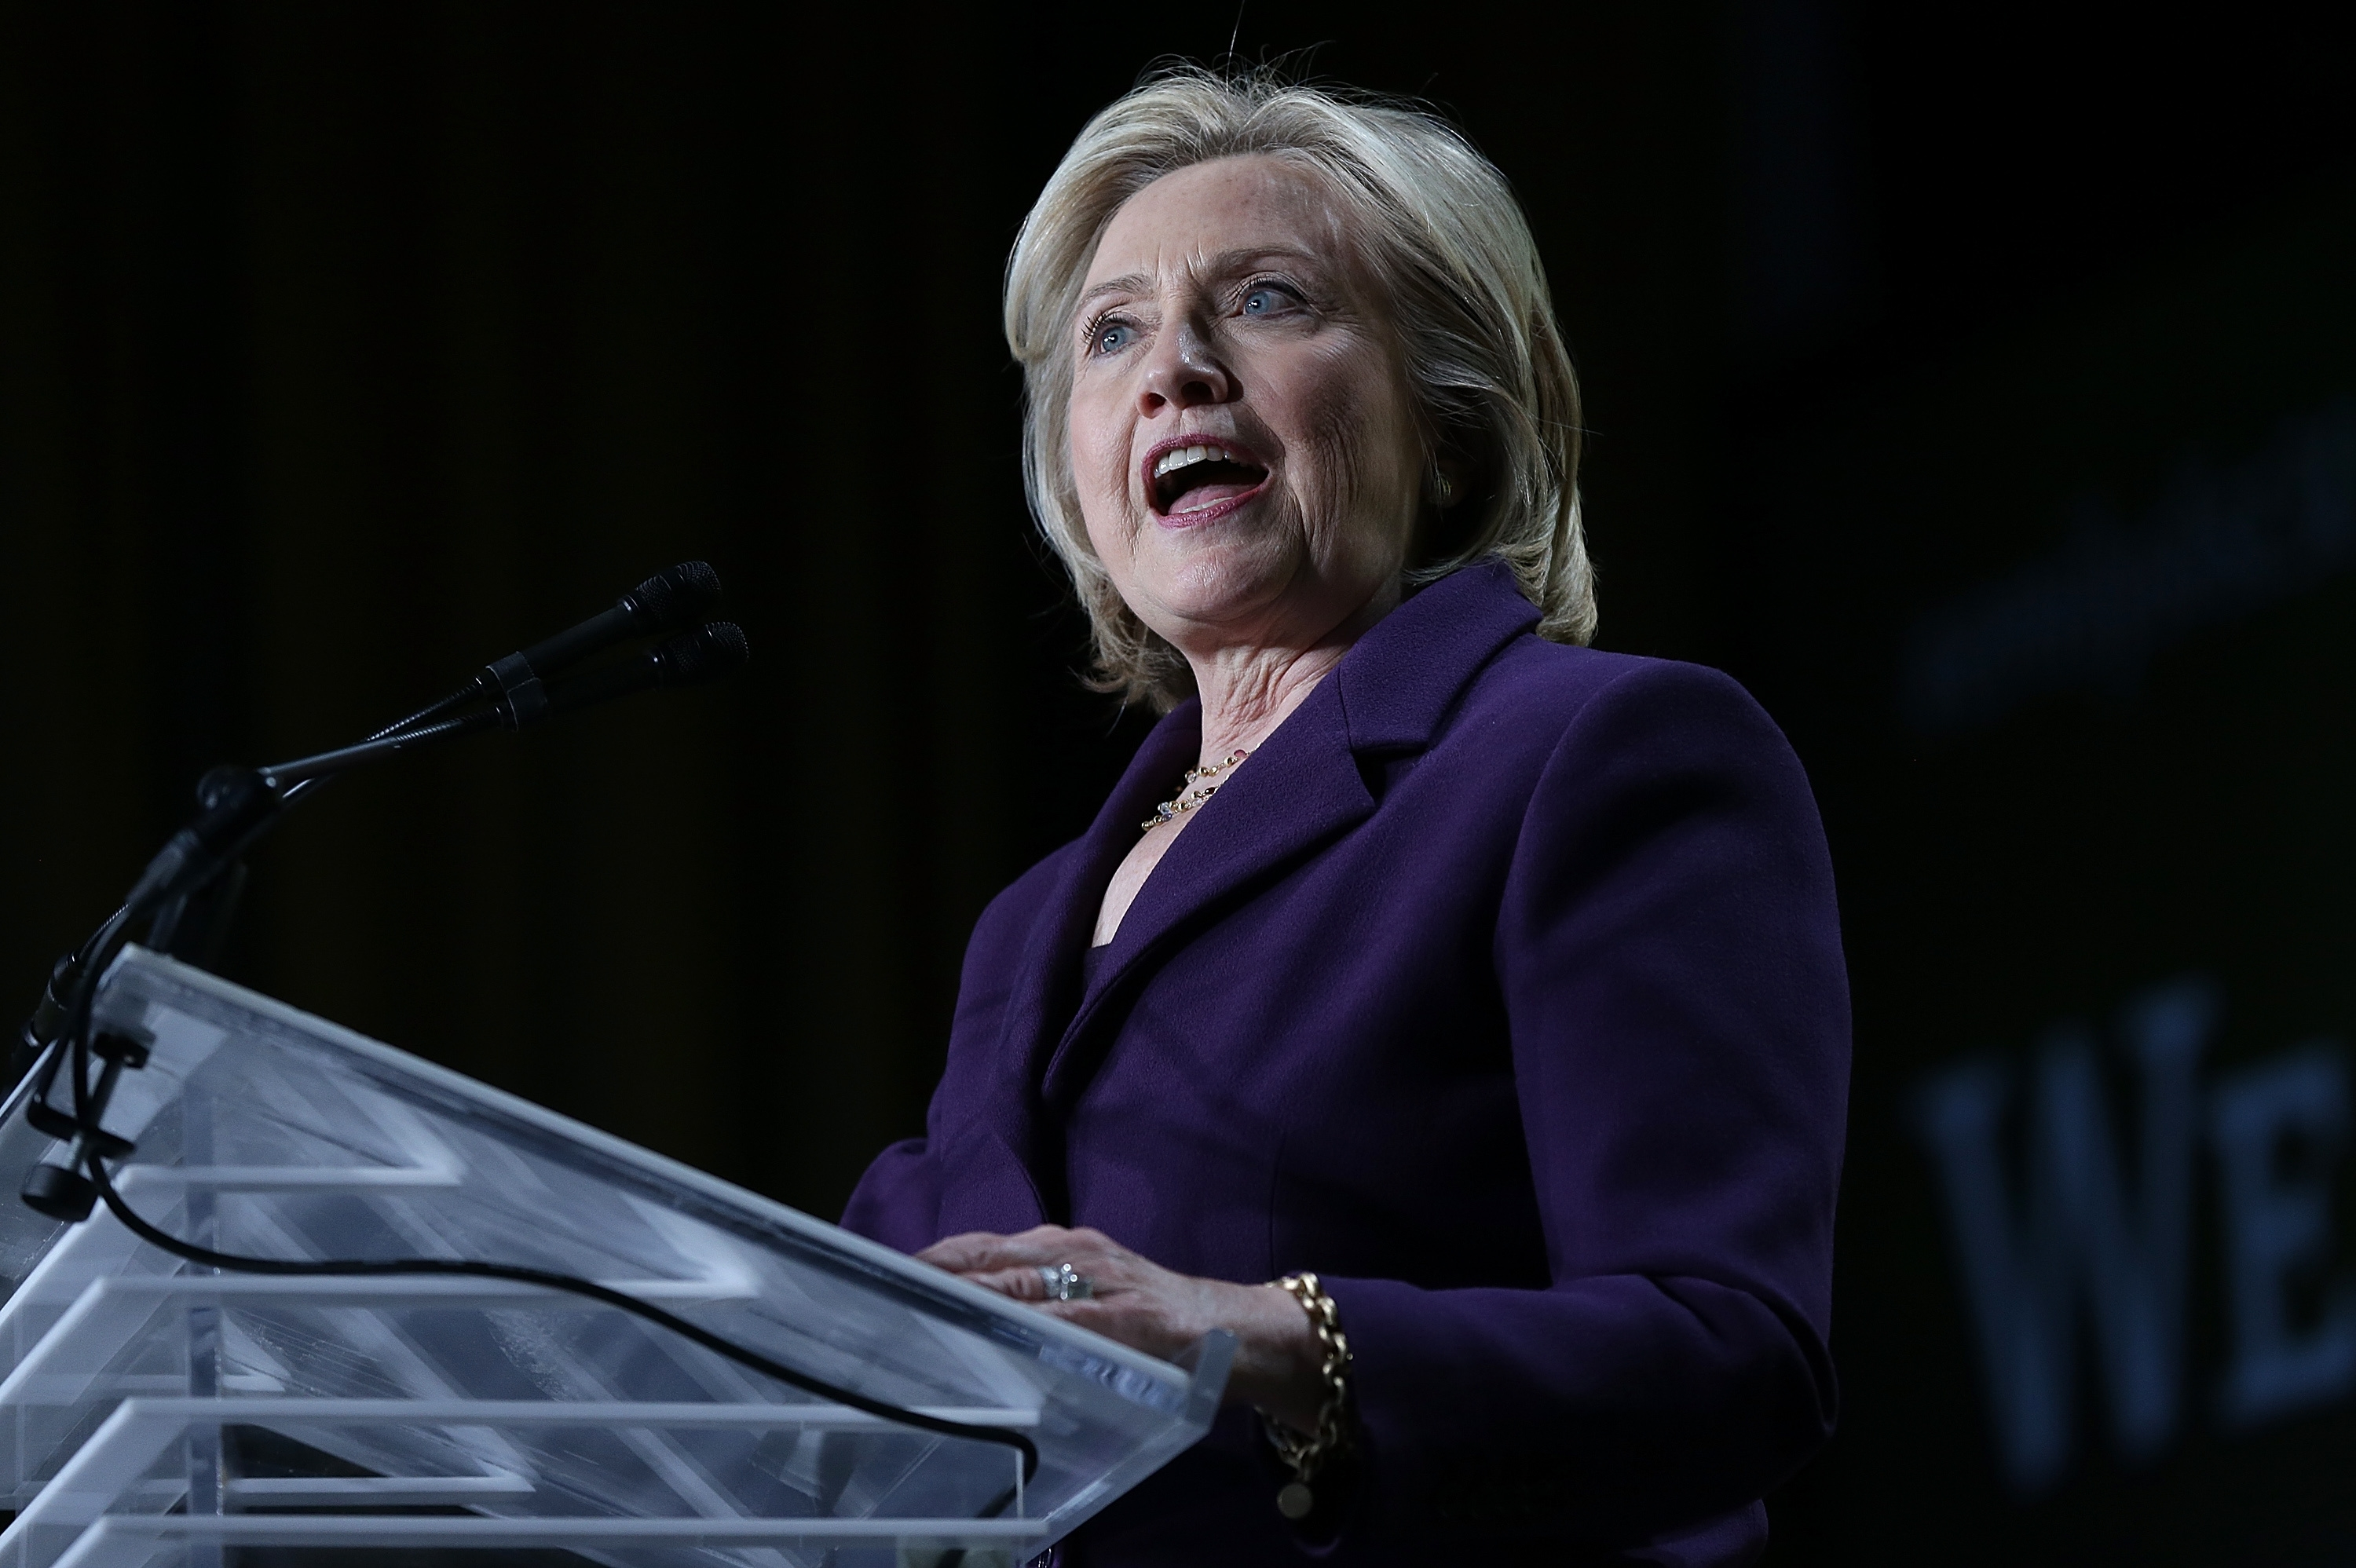 Hillary Clinton should not have used her personal email account to conduct official business while she was secretary of state. (Getty Images)